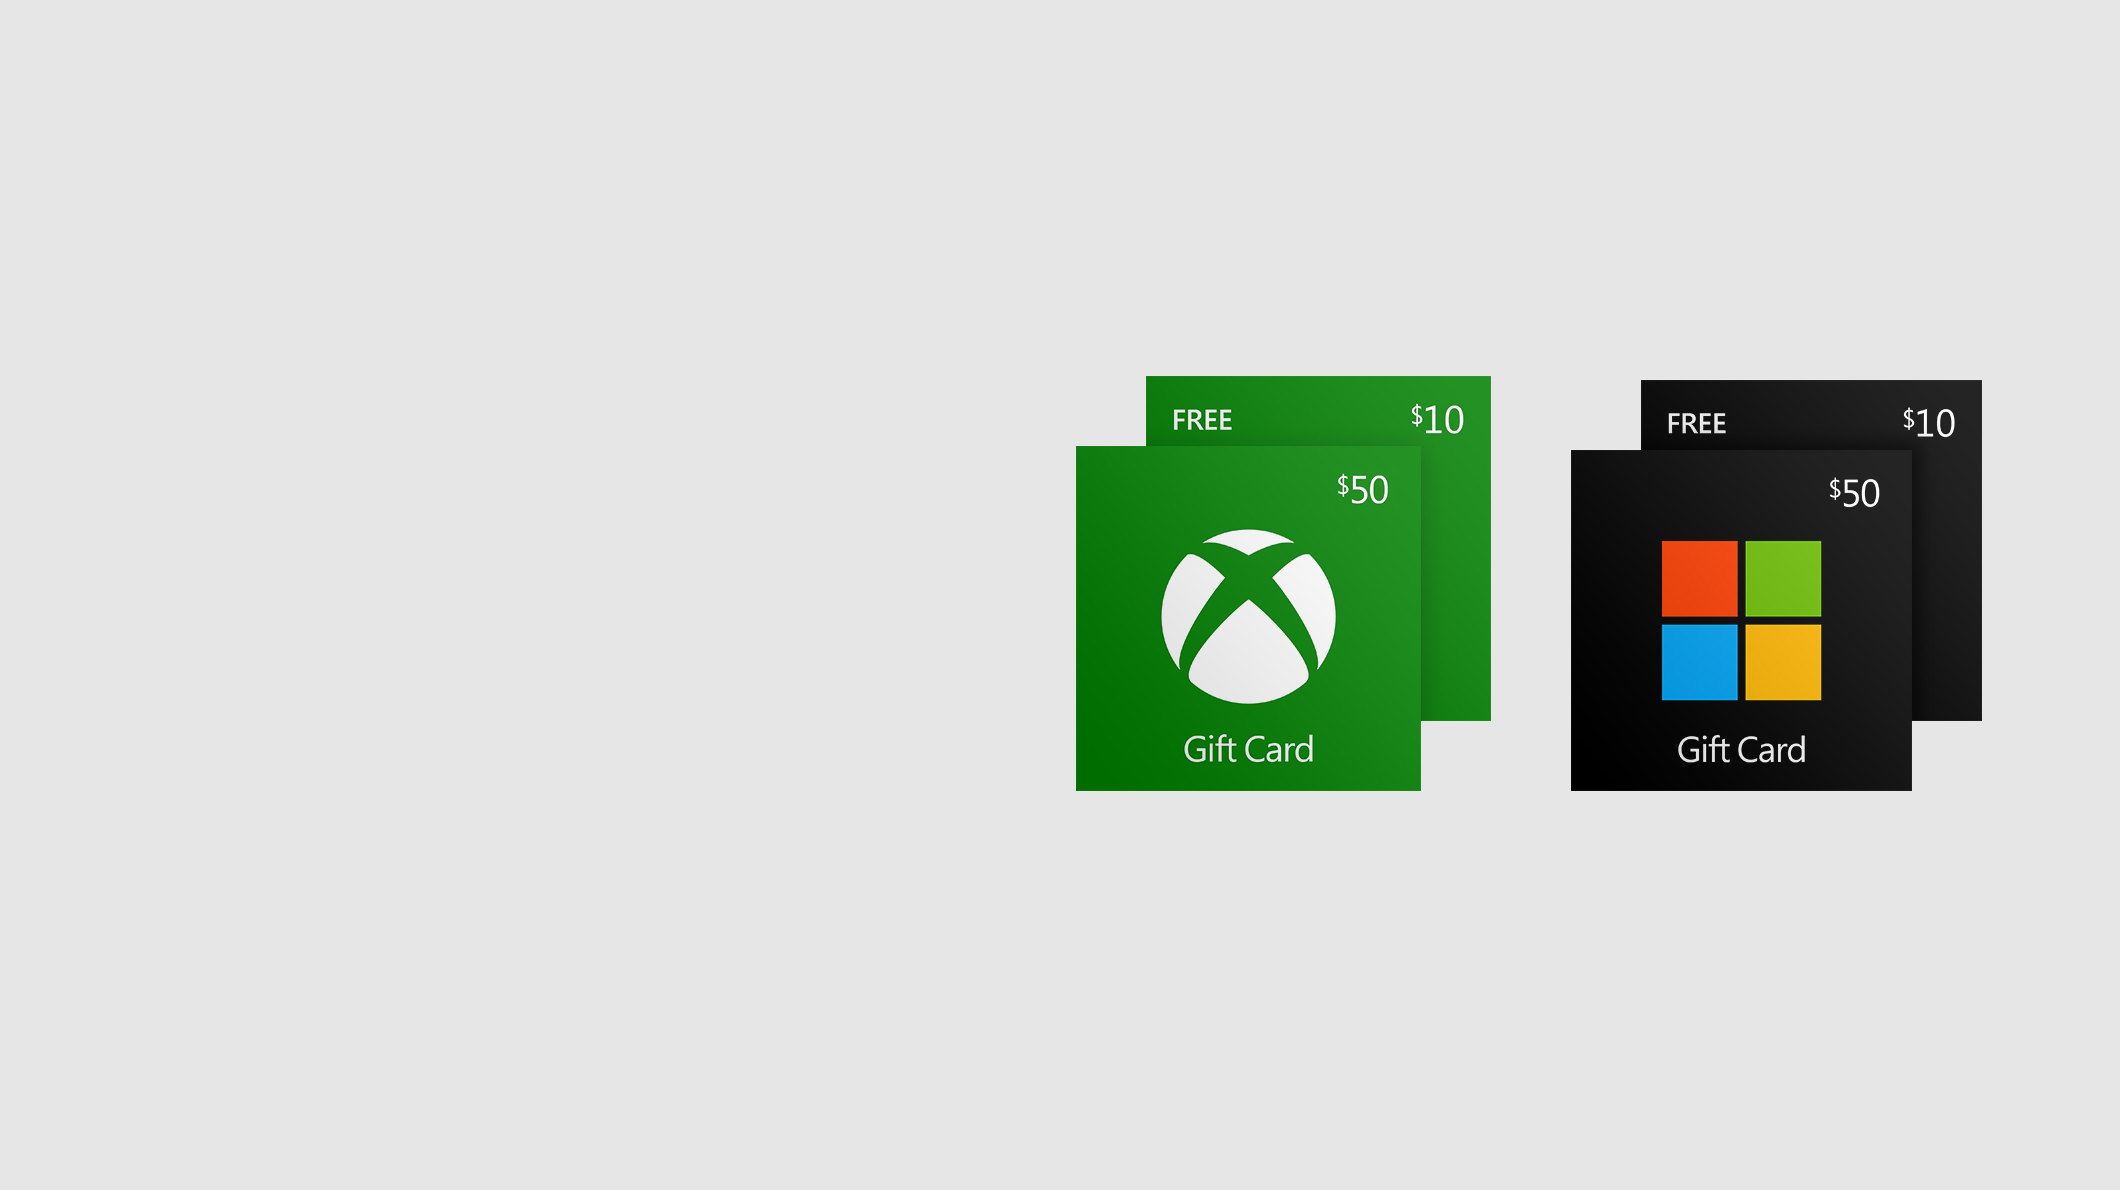 A $50 Xbox Gift Card in front of a free $10 value Xbox Gift Card, and a $50 Microsoft Gift Card in front of a free $10 value Microsoft Gift Card.